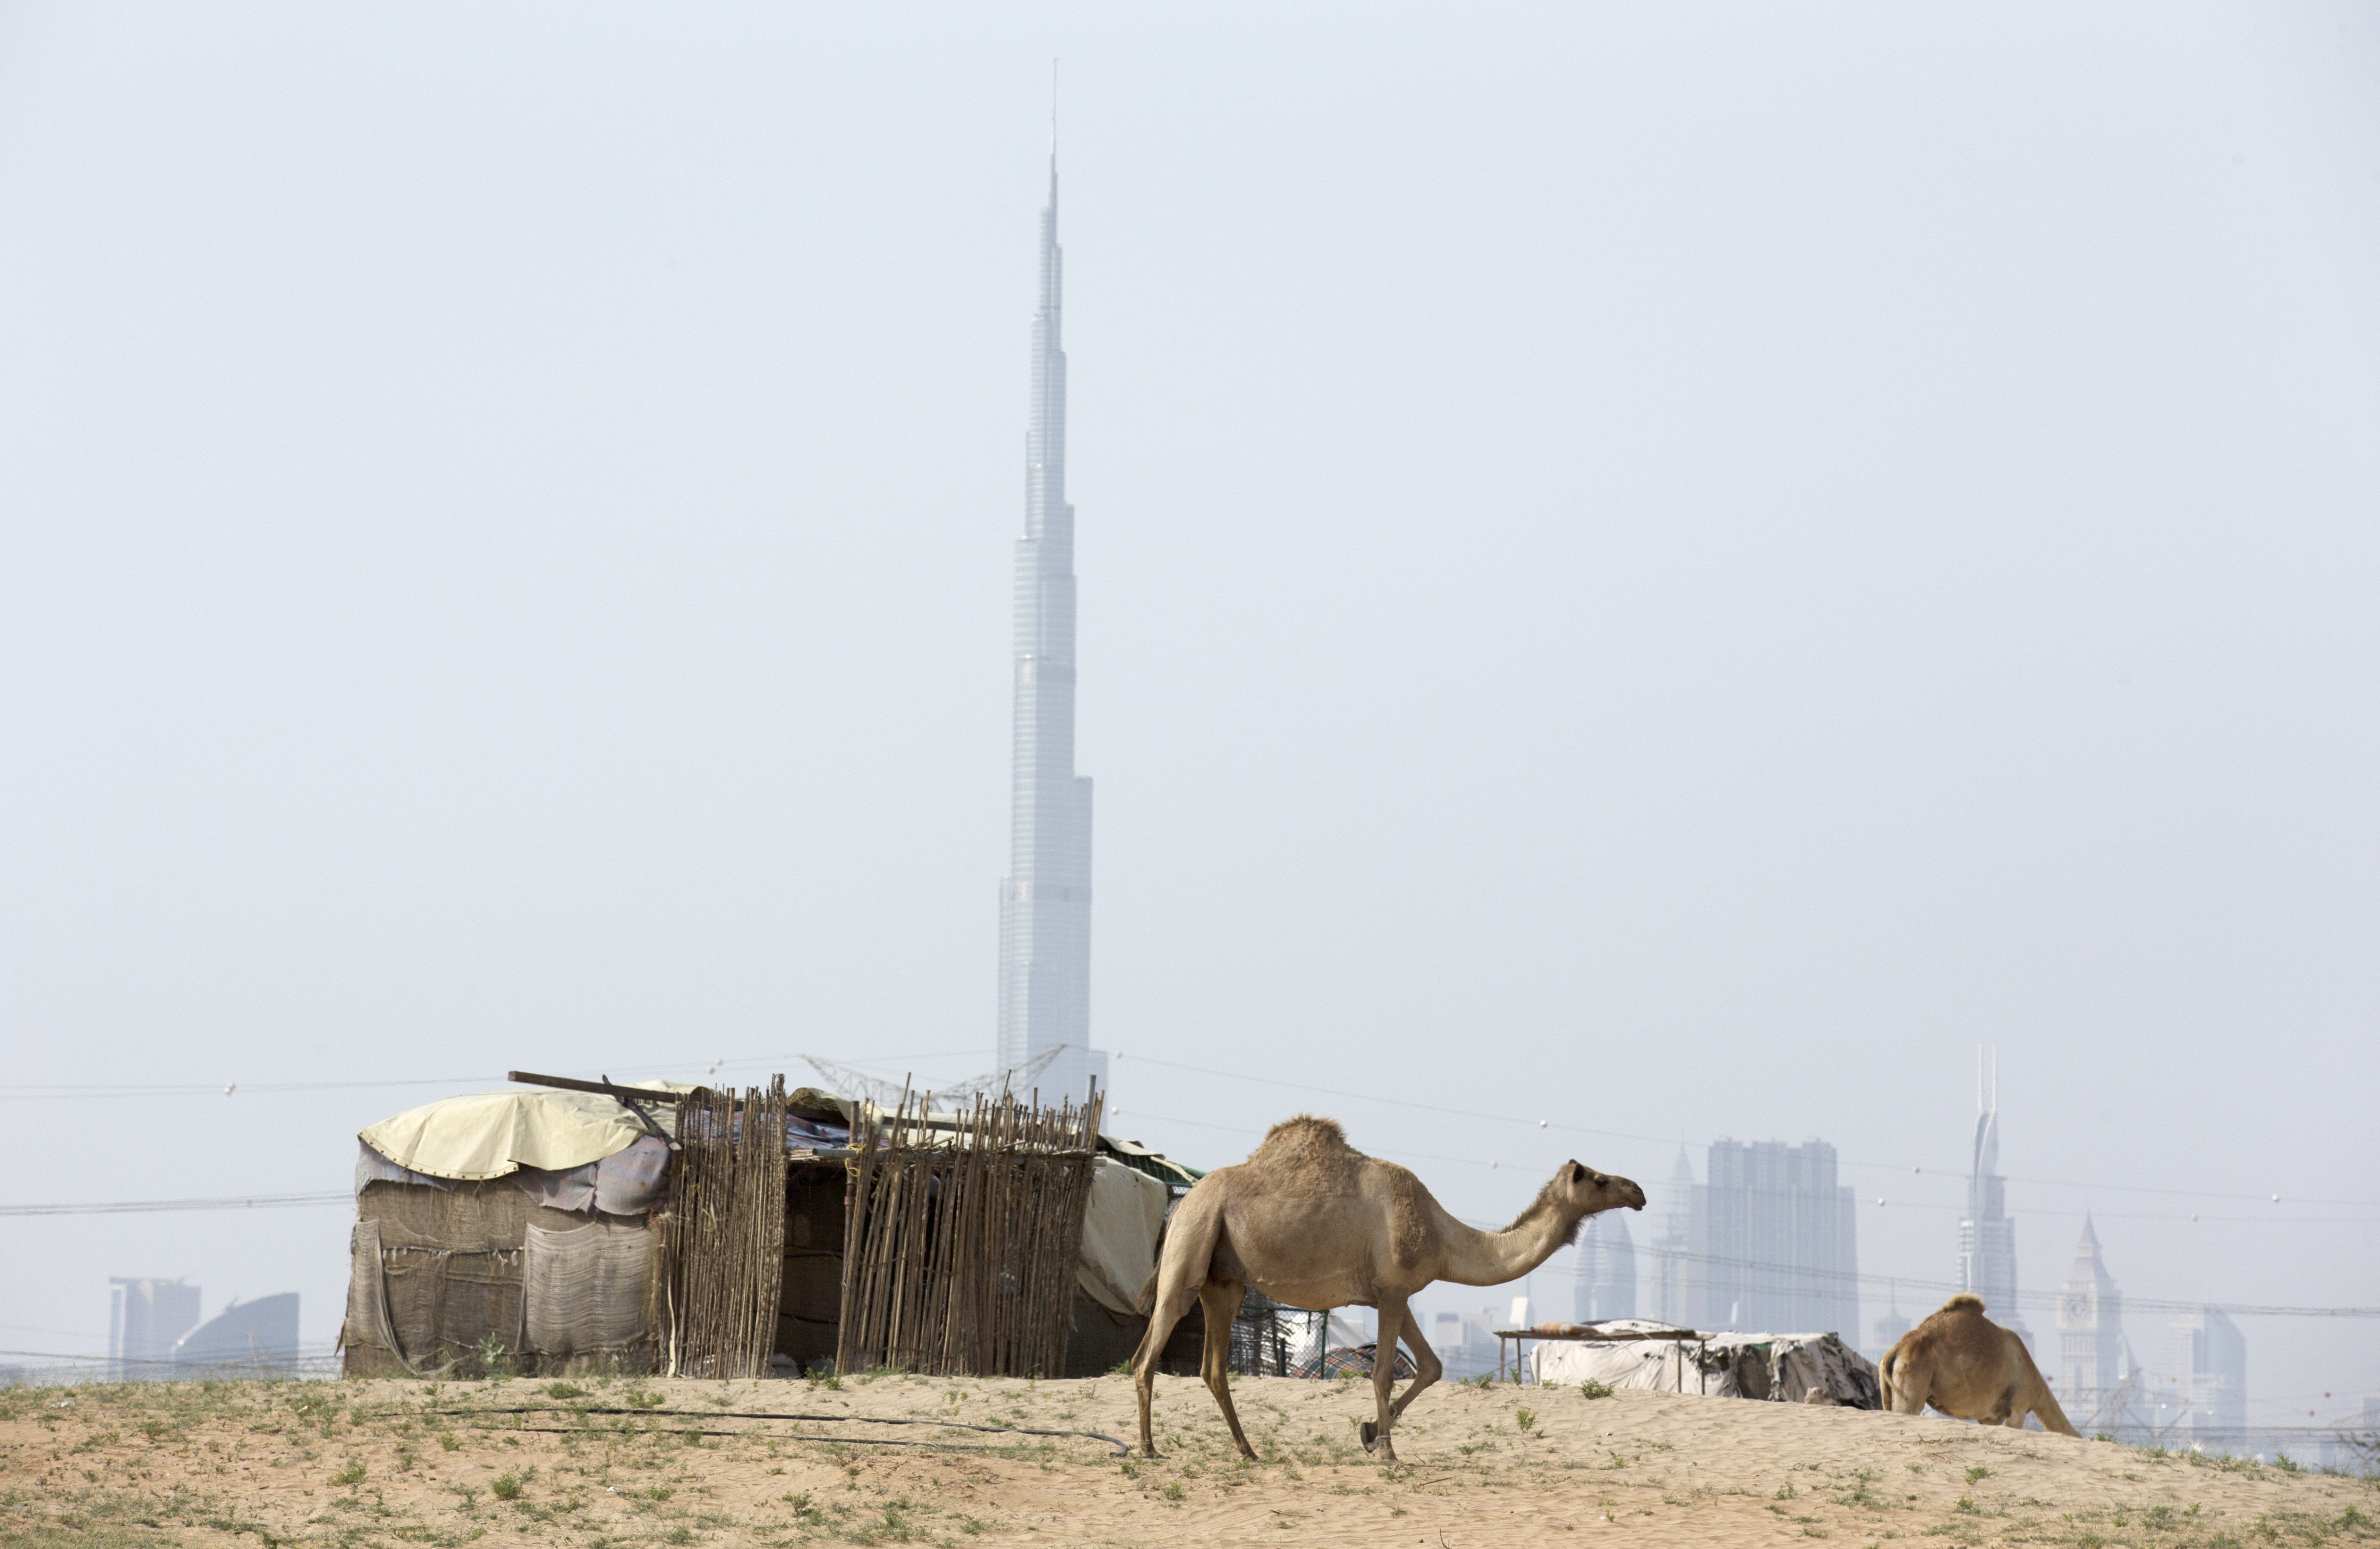 DUBAI, UNITED ARAB EMIRATES - APRIL 17:  A basic dwelling of a camel handler is pictured with the Burj Khalifa in the back ground as a camel walks past on April 17, 2014 in Dubai, United Arab Emirates.  (Photo by Warren Little/Getty Images)